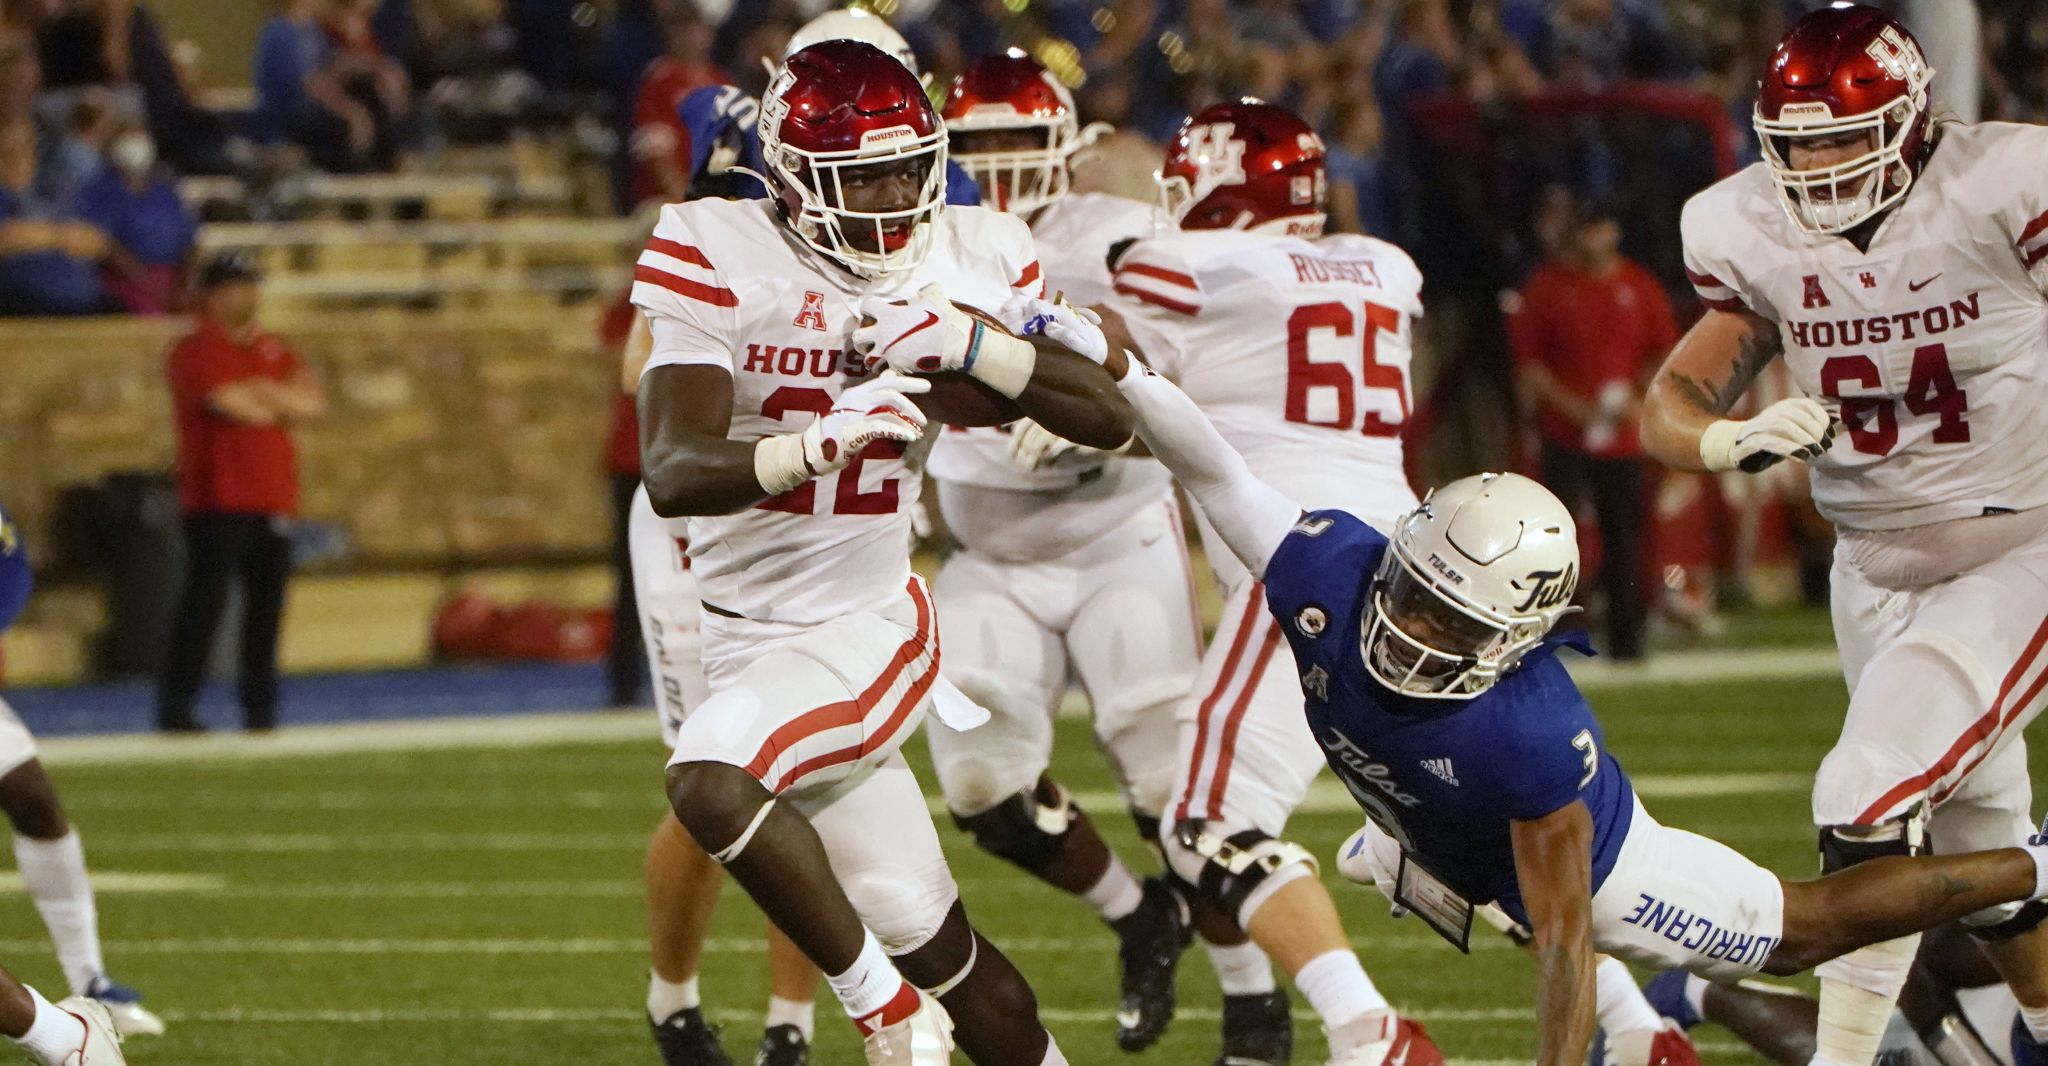 Alton McCaskill leads the way as UH routs Tulsa